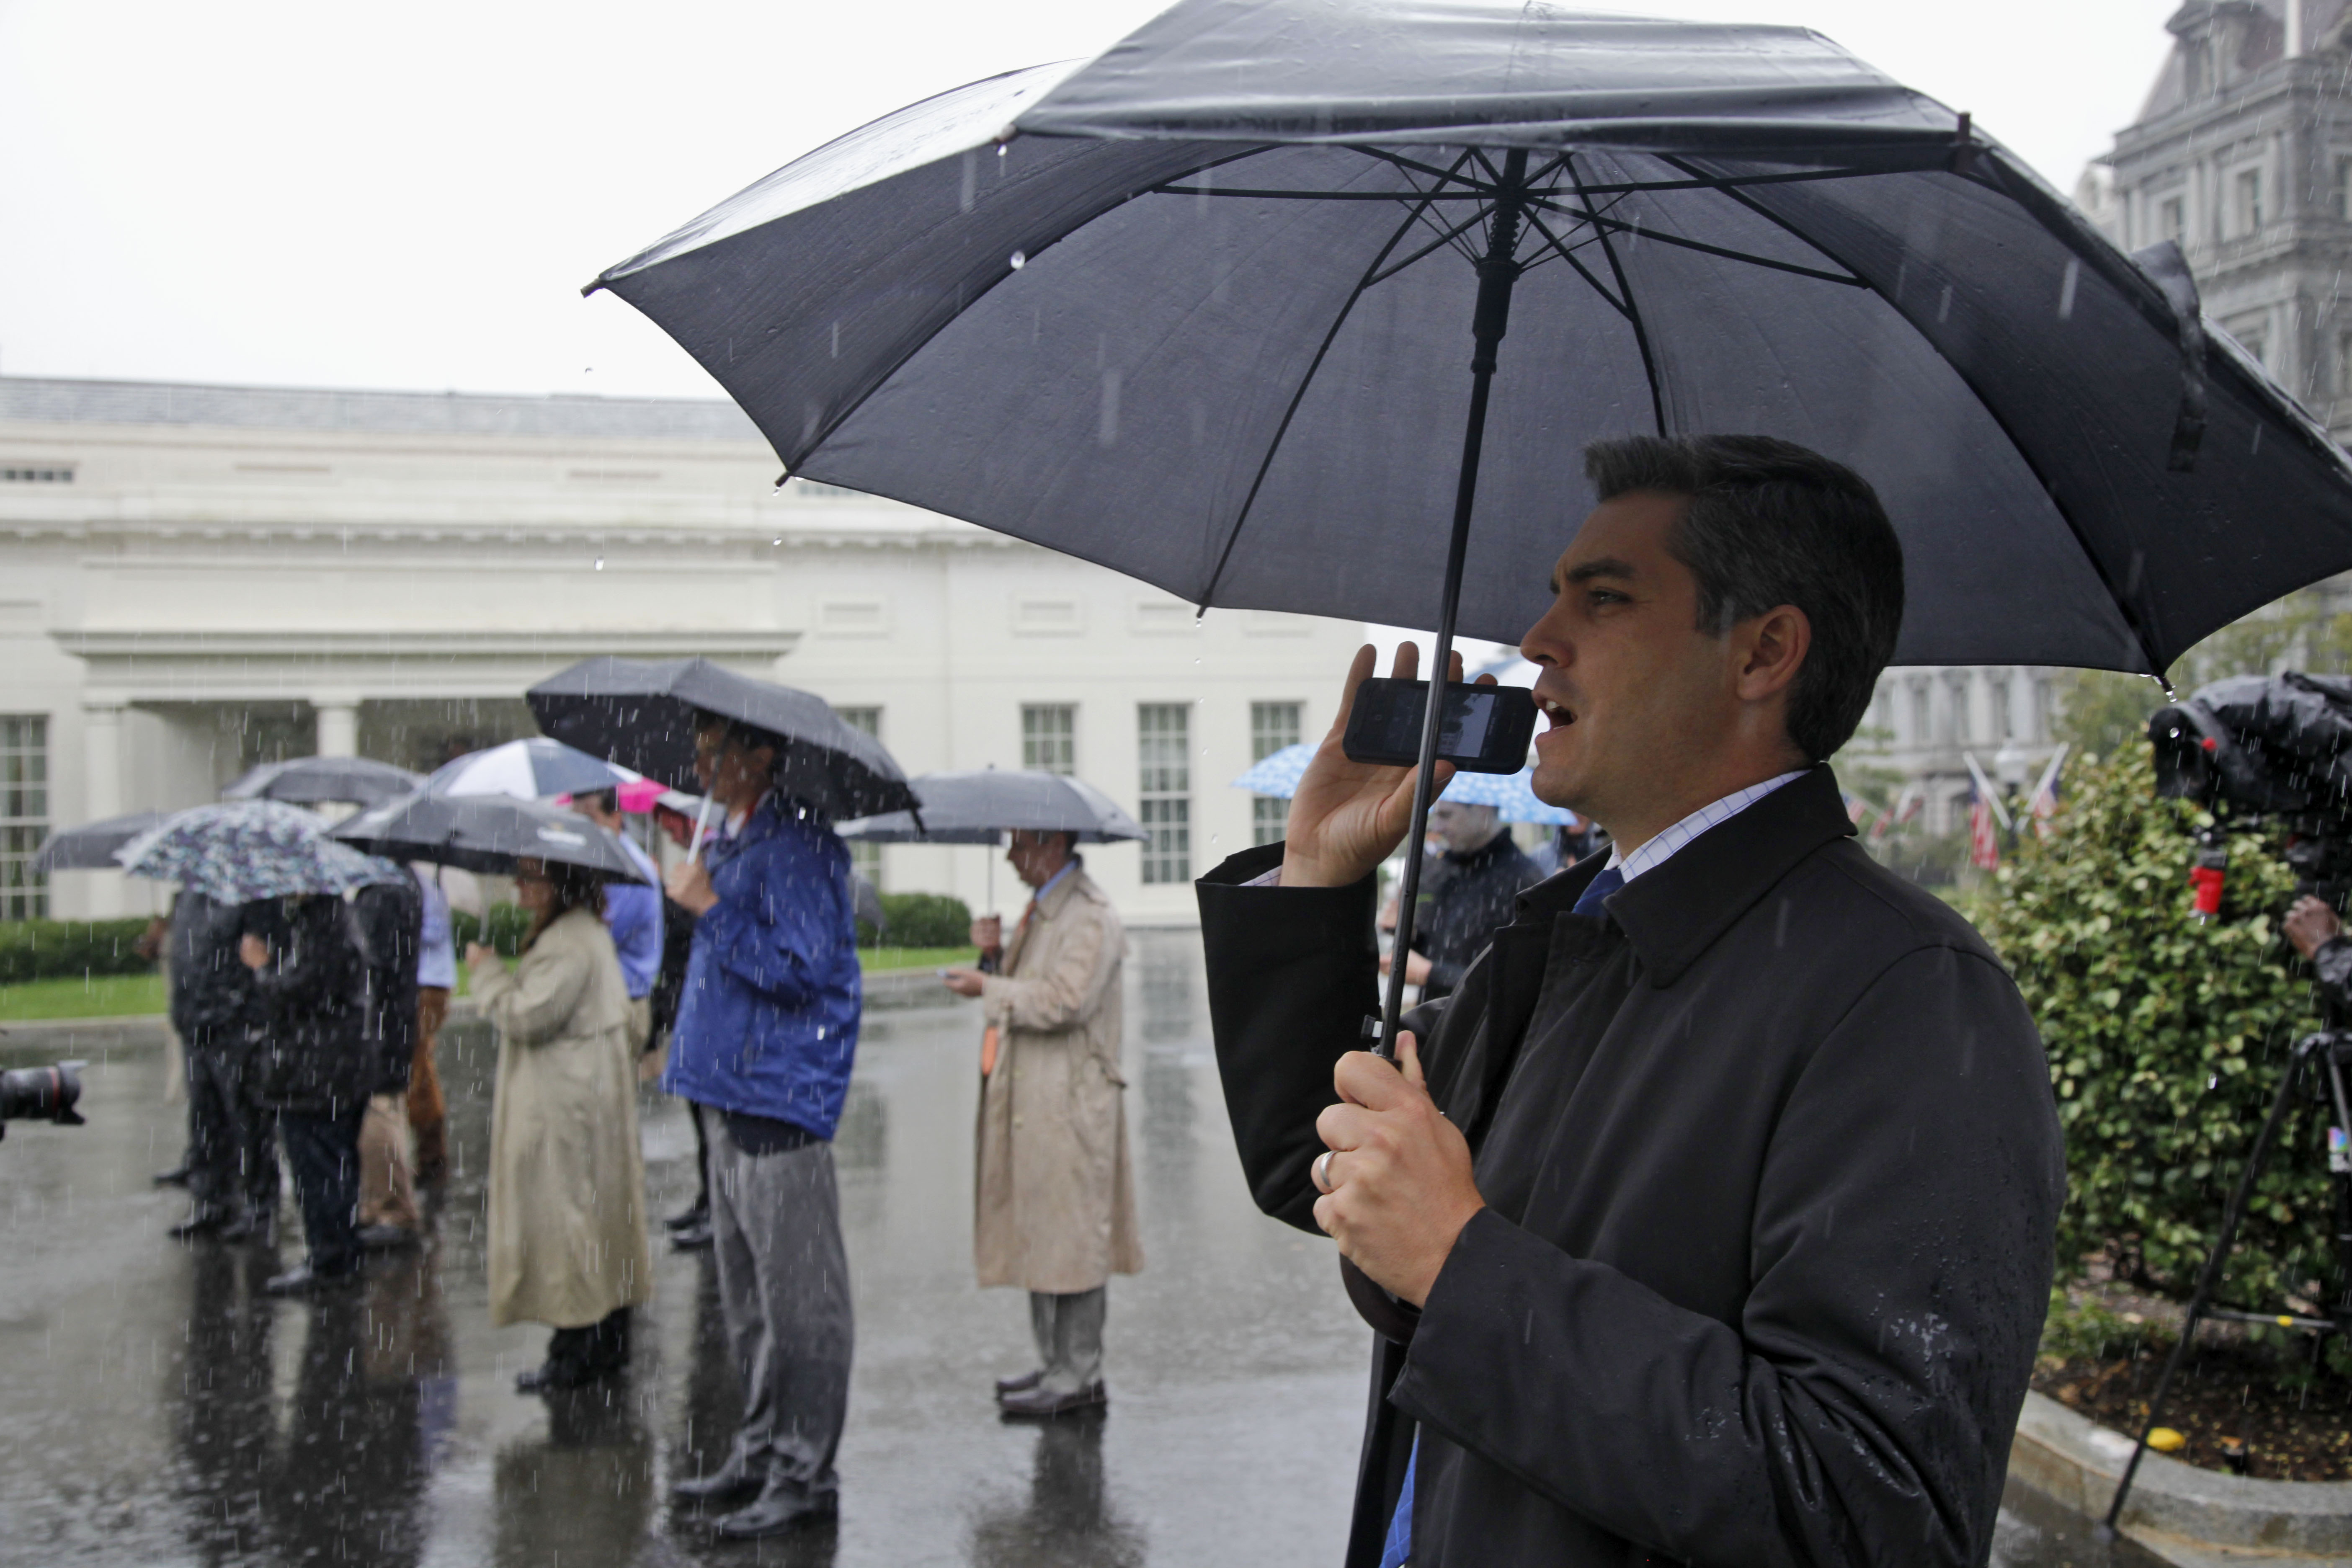 Jim Acosta of CNN shouts questions as he waits with other reporters in the rain outside the White House in Washington, Friday, Oct. 11, 2013, as Republican senators leave from the North Portico without speaking to reporters after meeting with President Barack Obama regarding the government shutdown and debt ceiling. (AP Photo/Charles Dharapak)